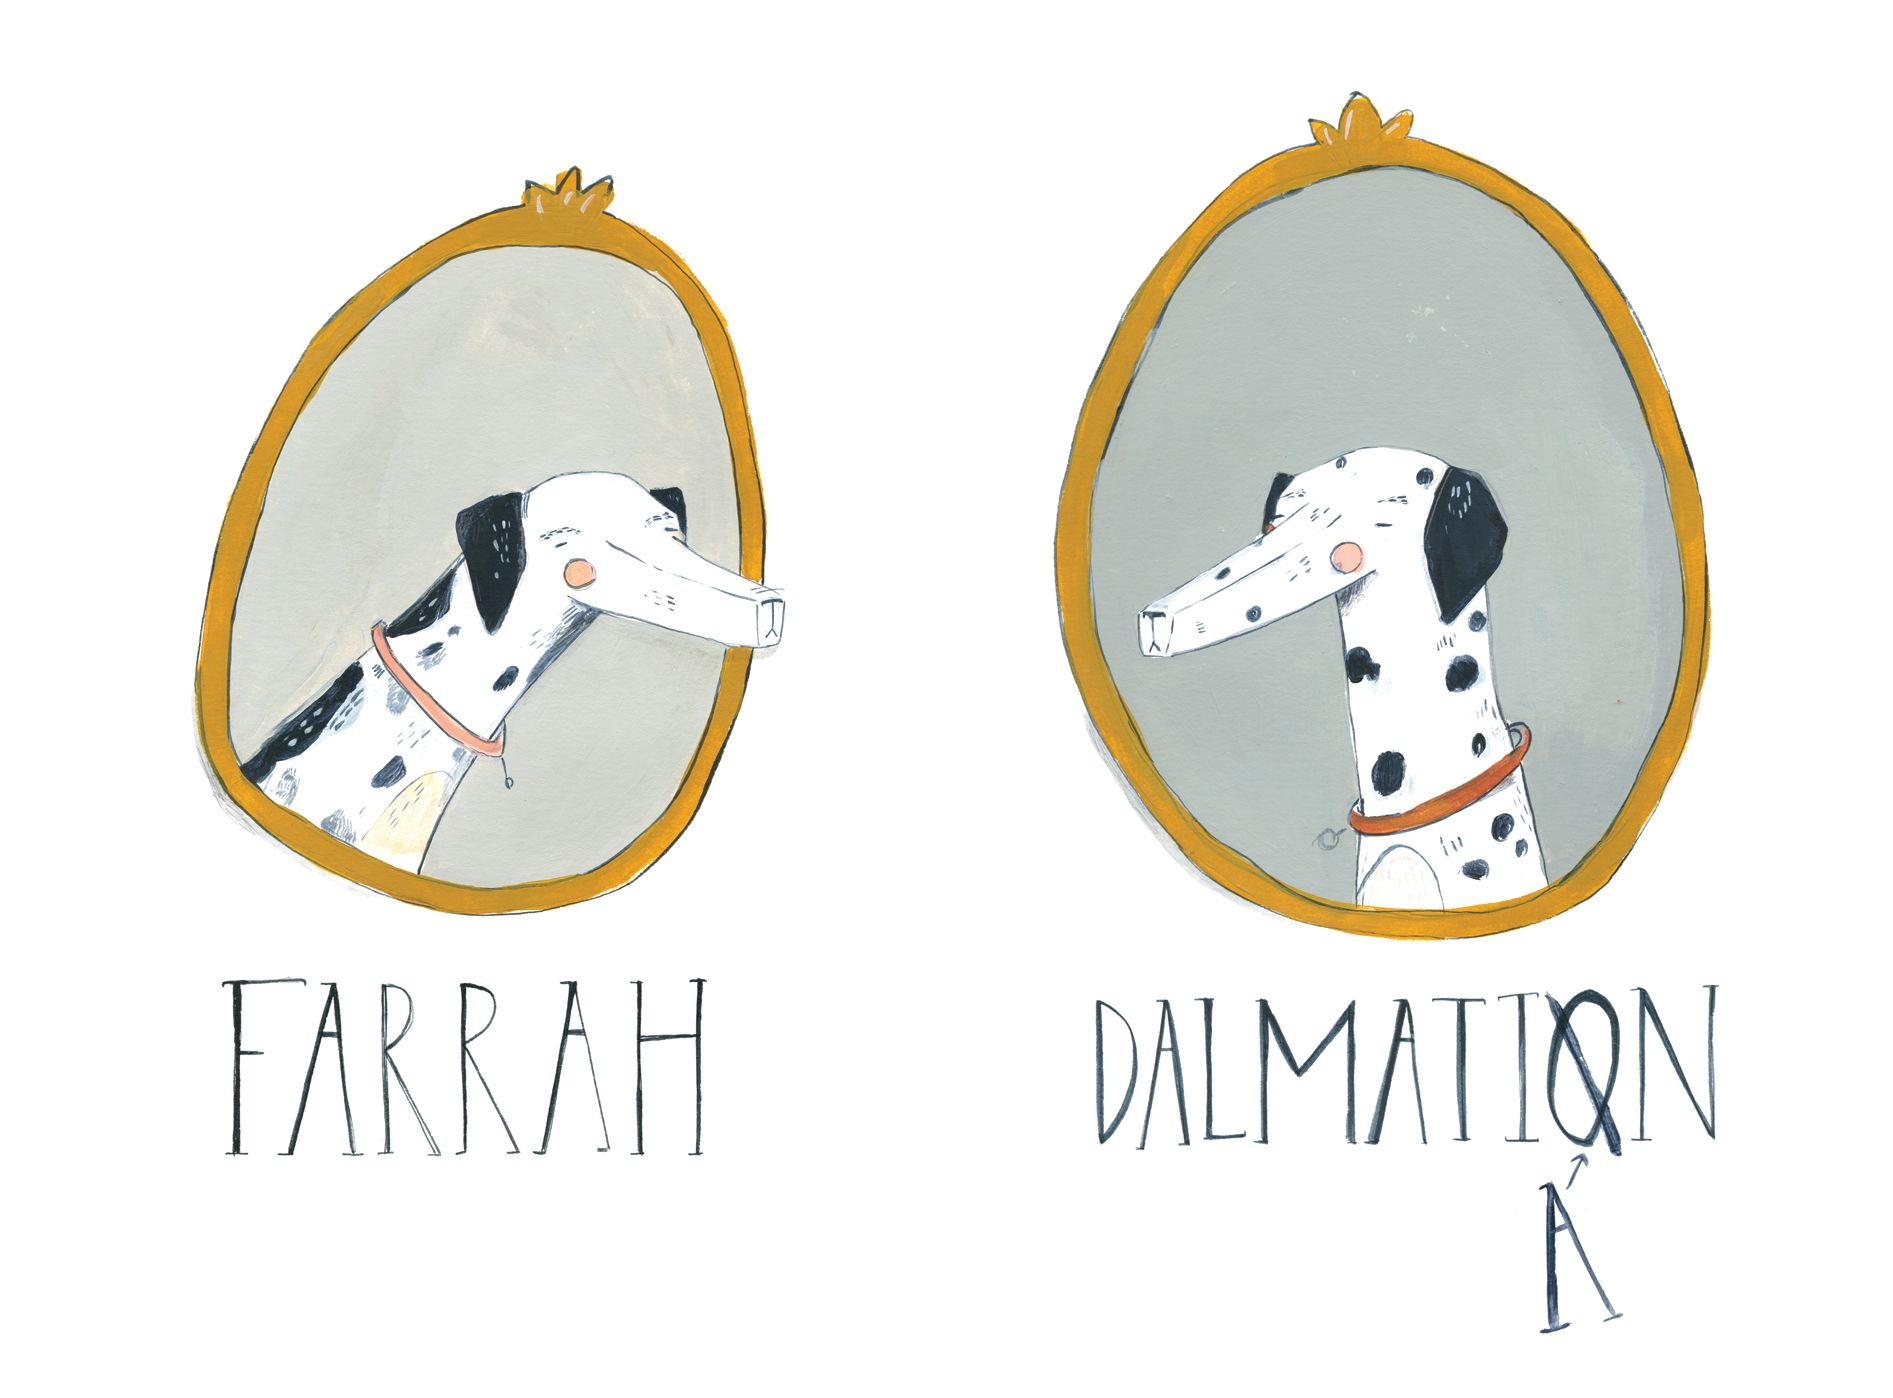 dalmatian illustration - Google Search